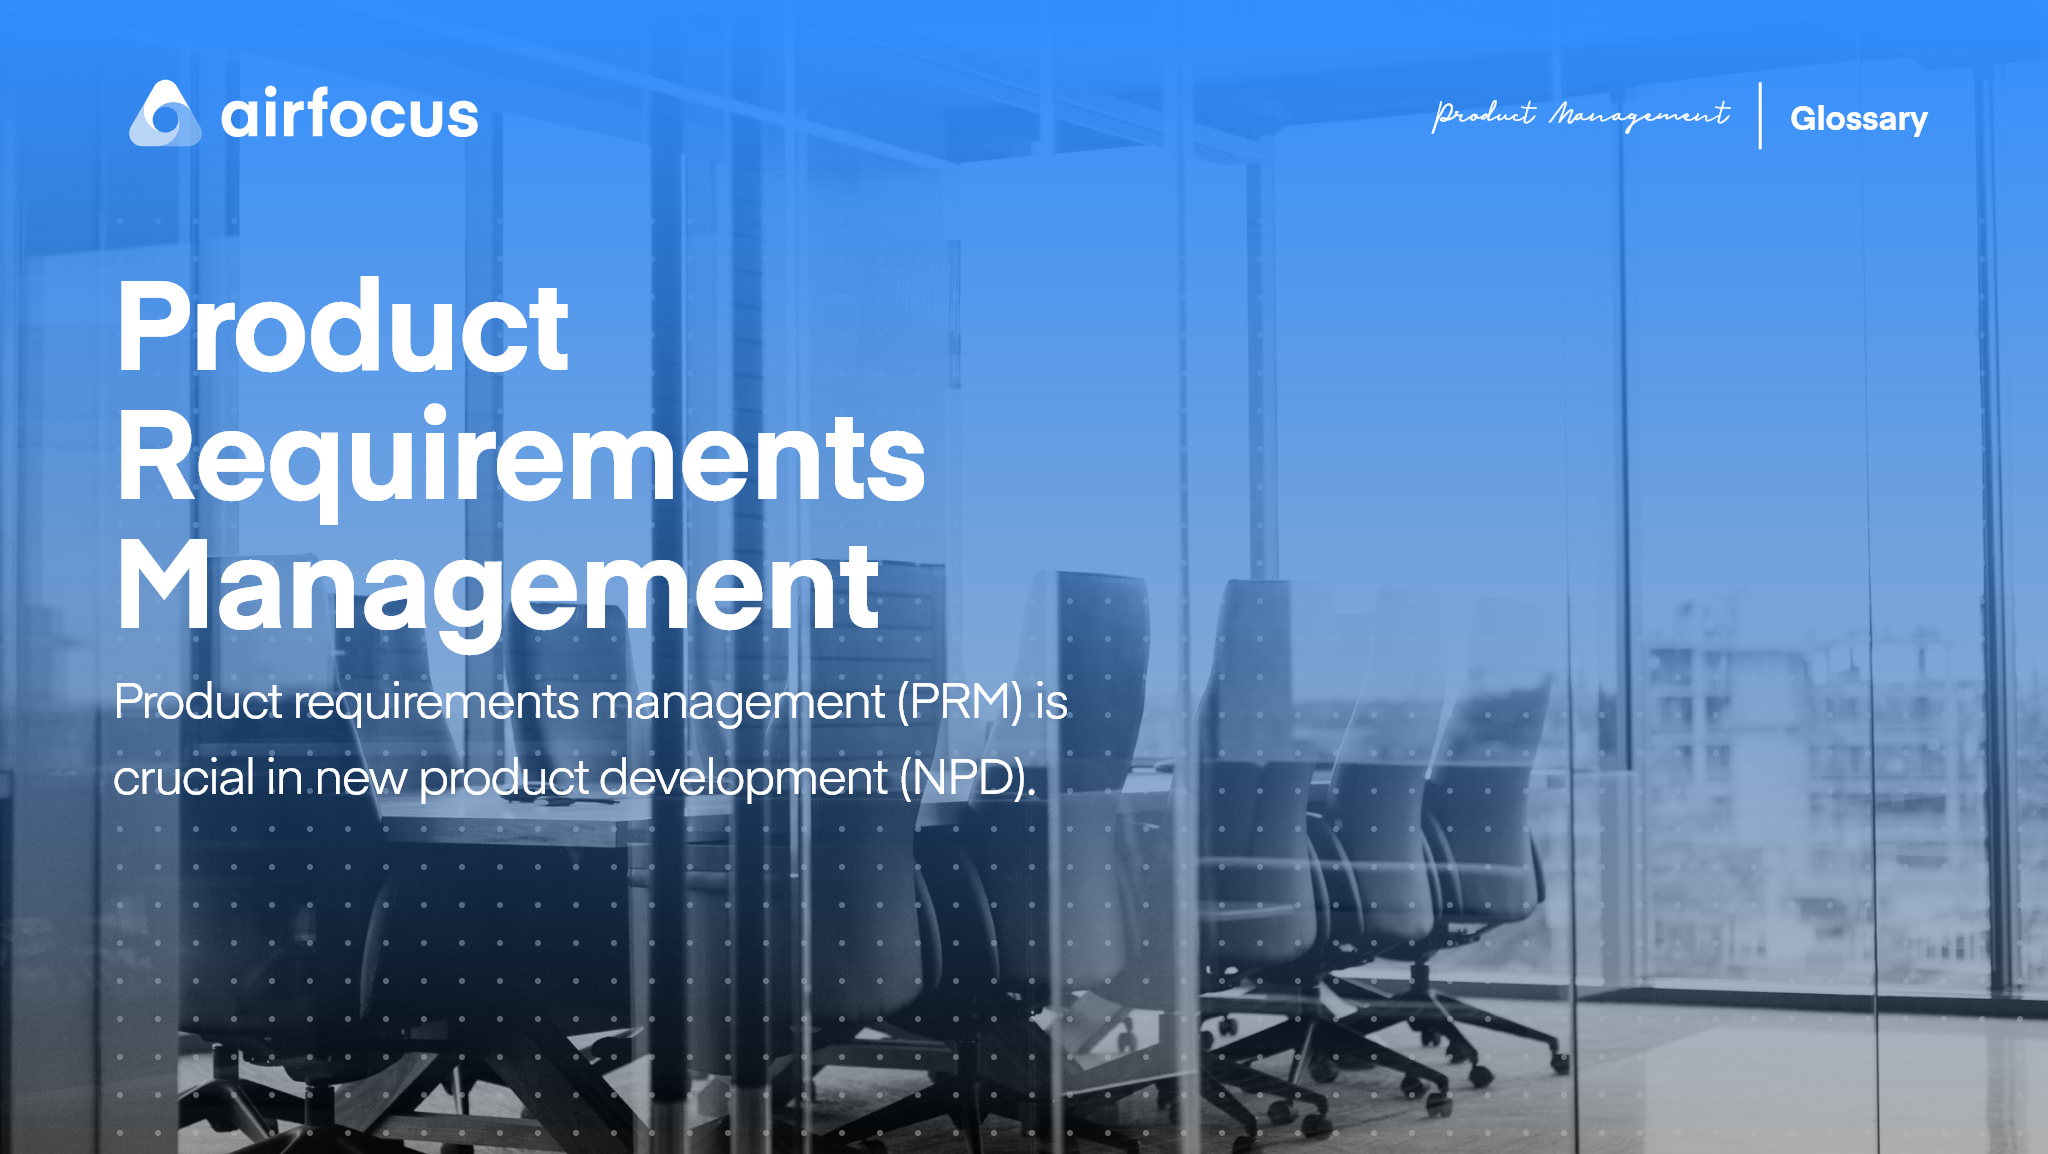 What is Product Requirements Management